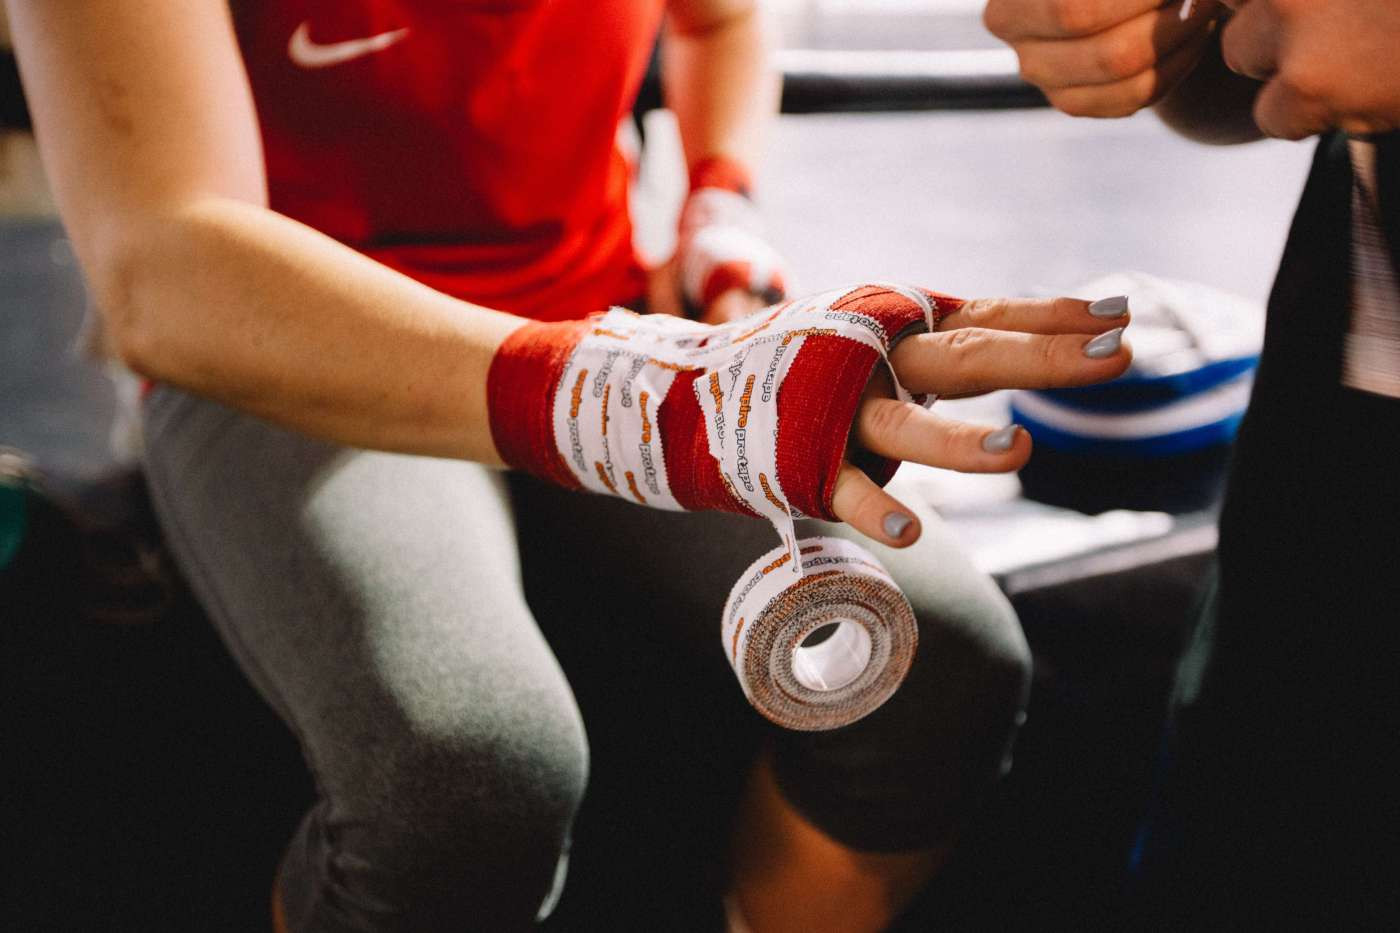 Grit - Woman Getting Hands Taped